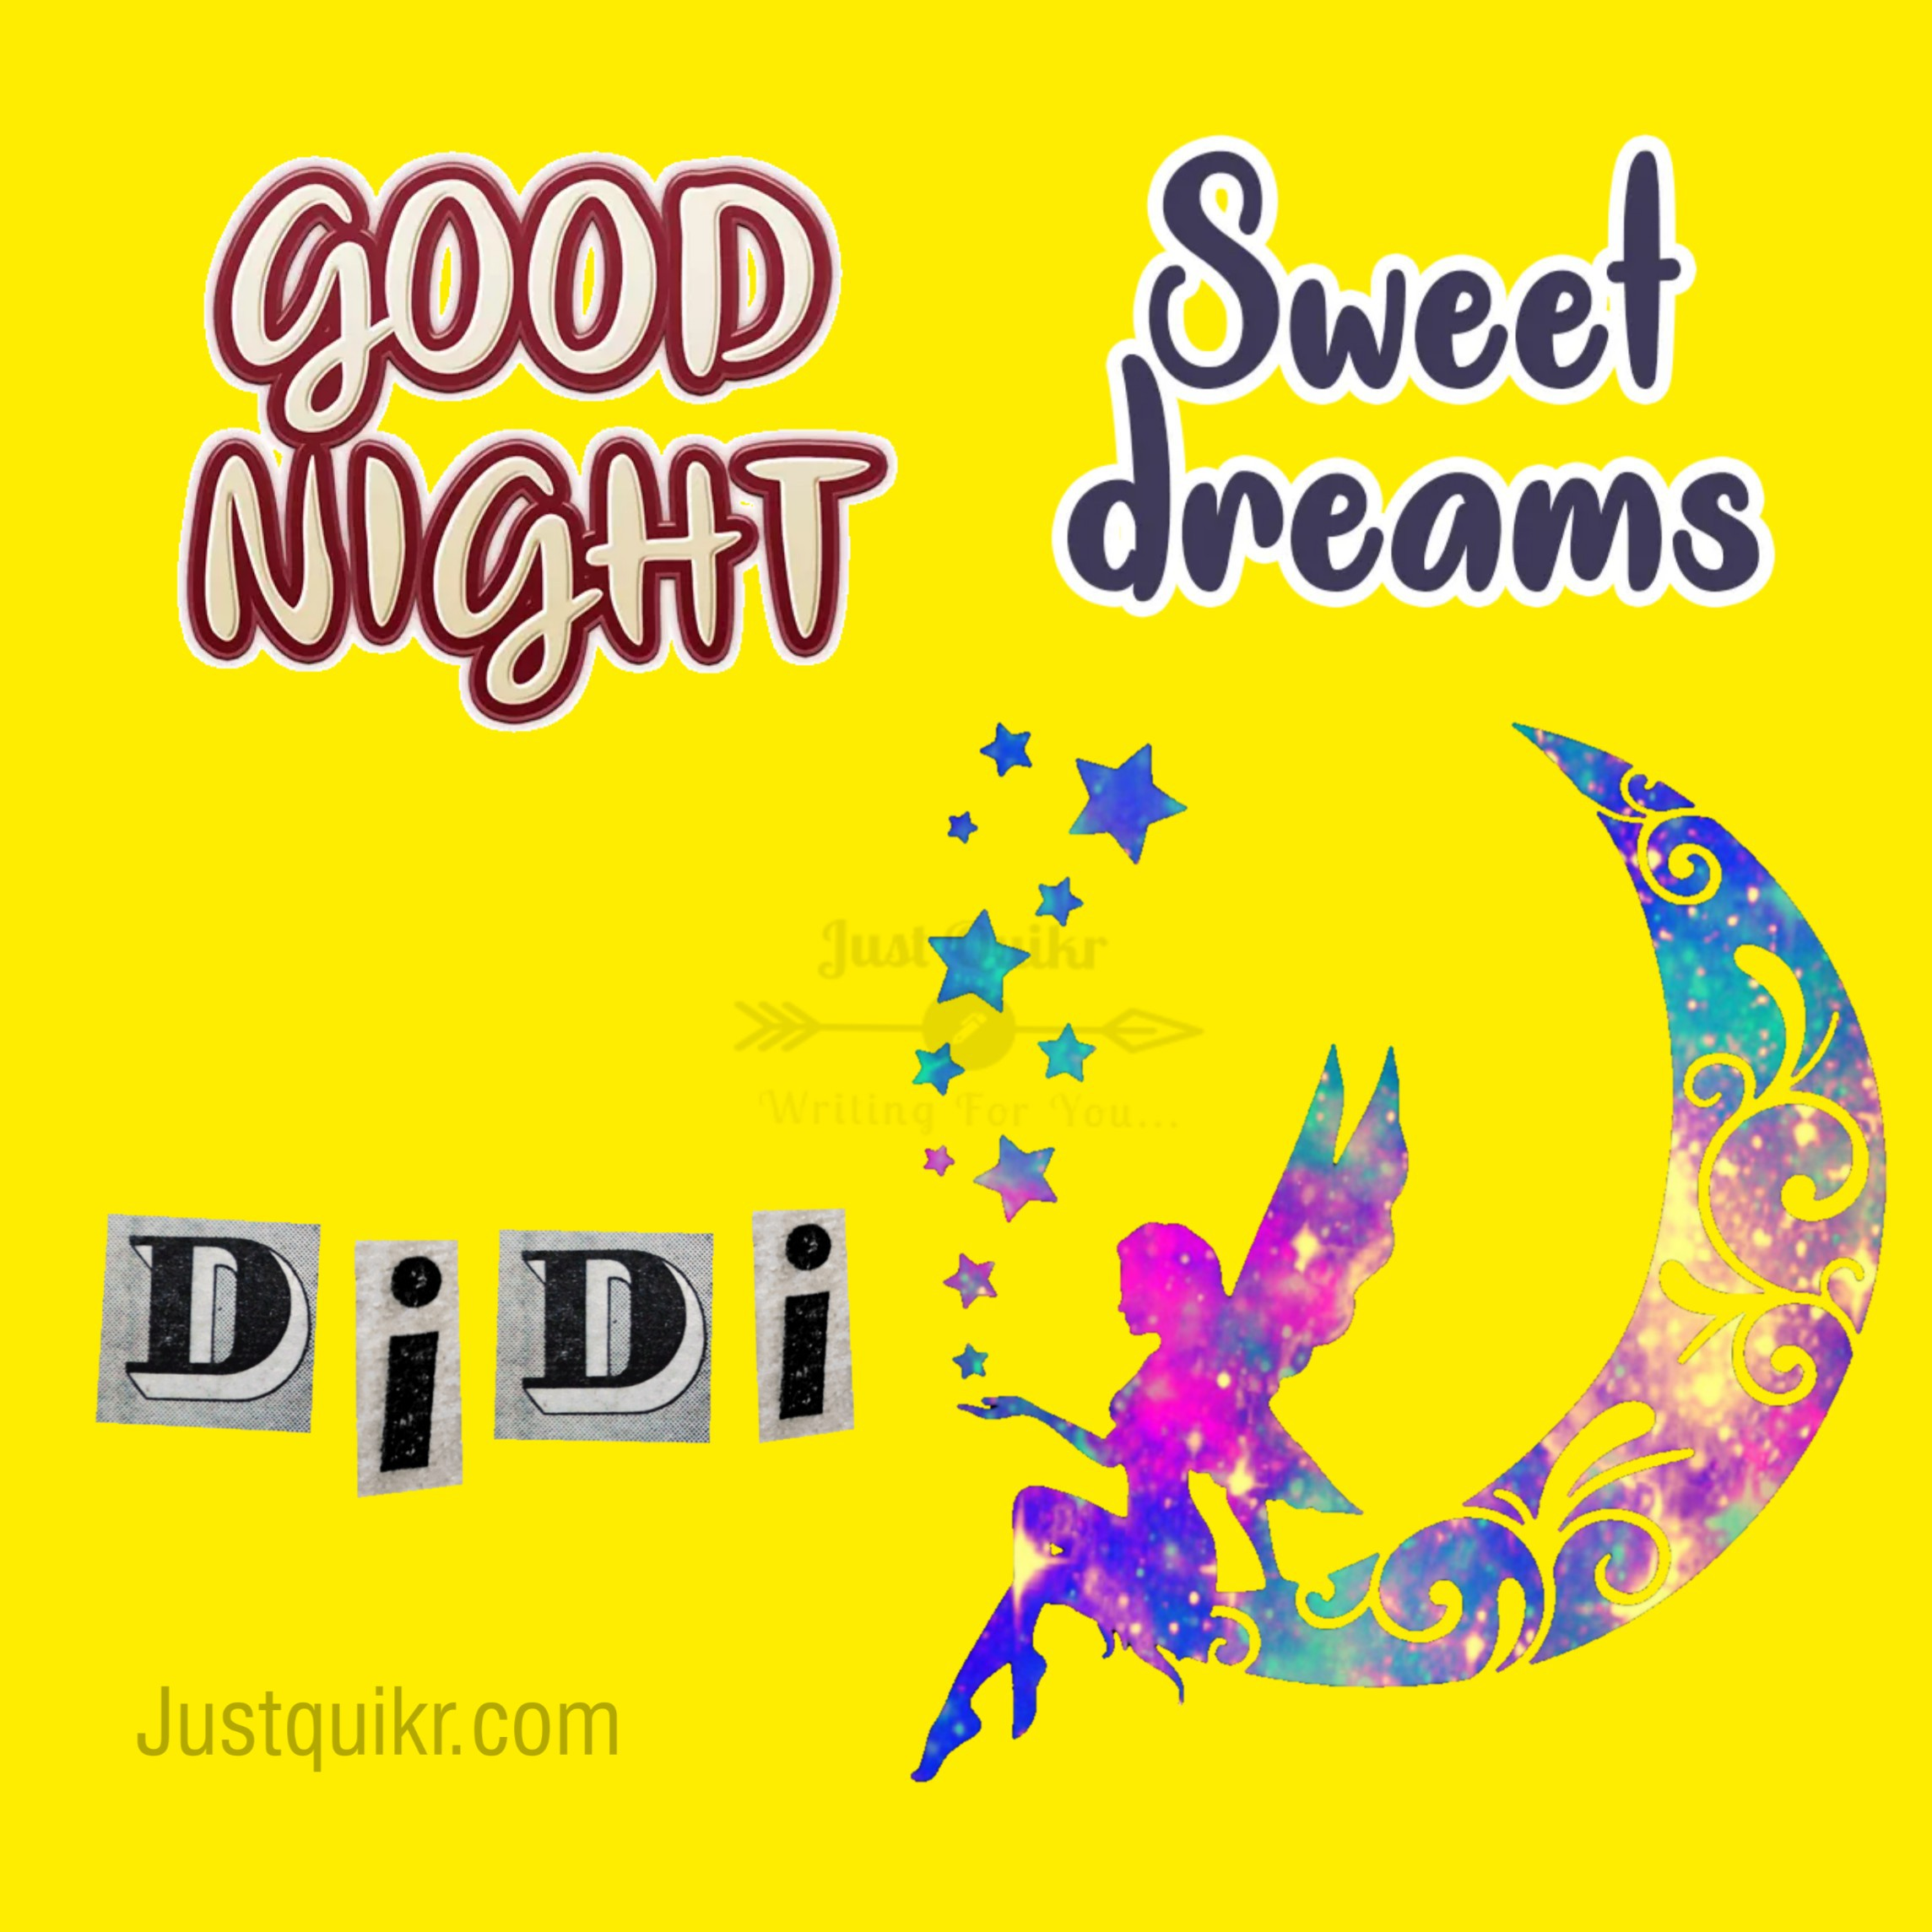 Good Night HD Pics Images For Didi